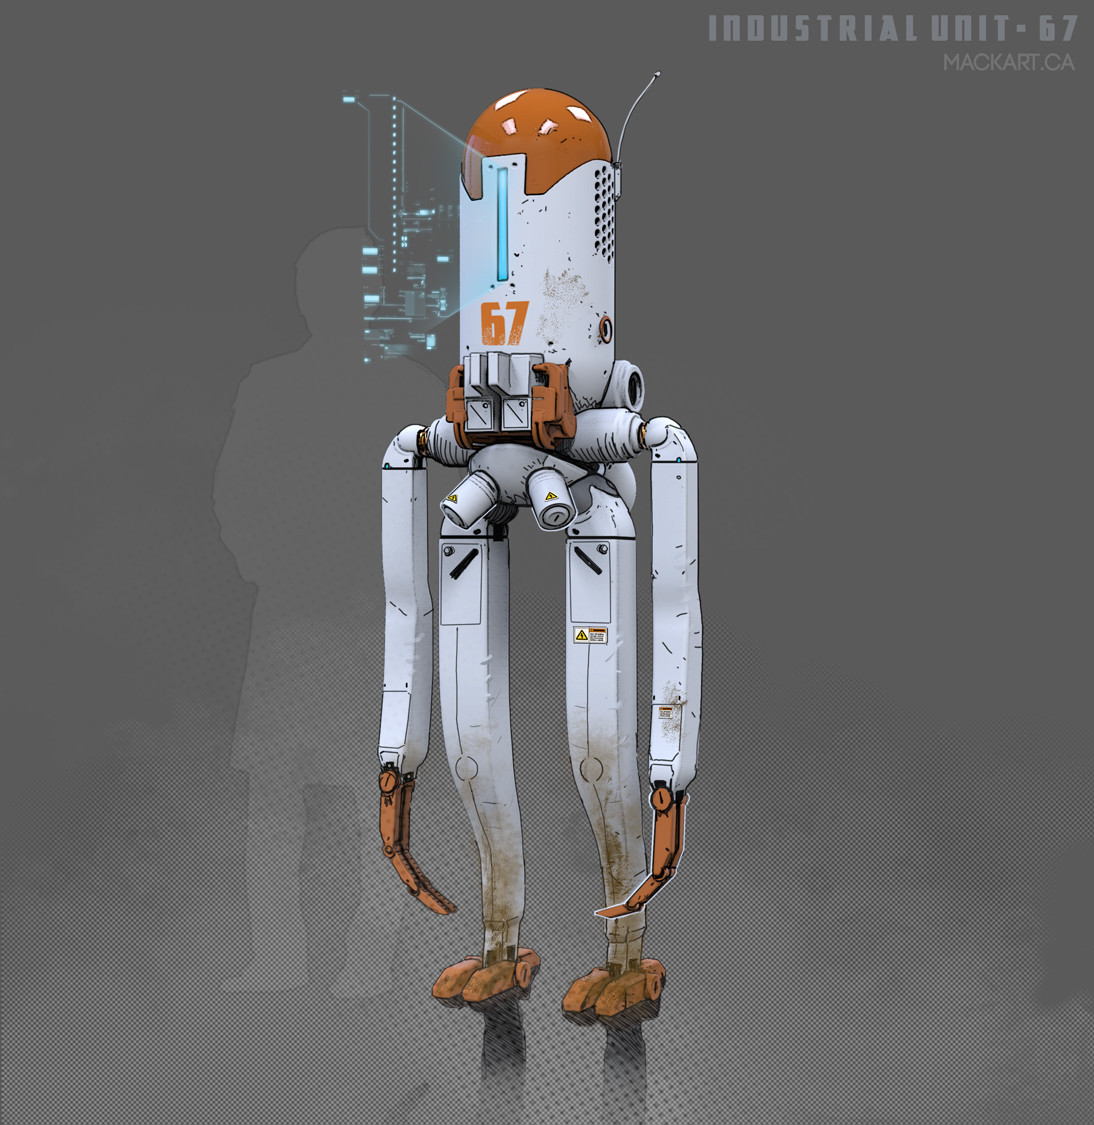 First generation Industrial Bot. Used to handle hazardous materials.